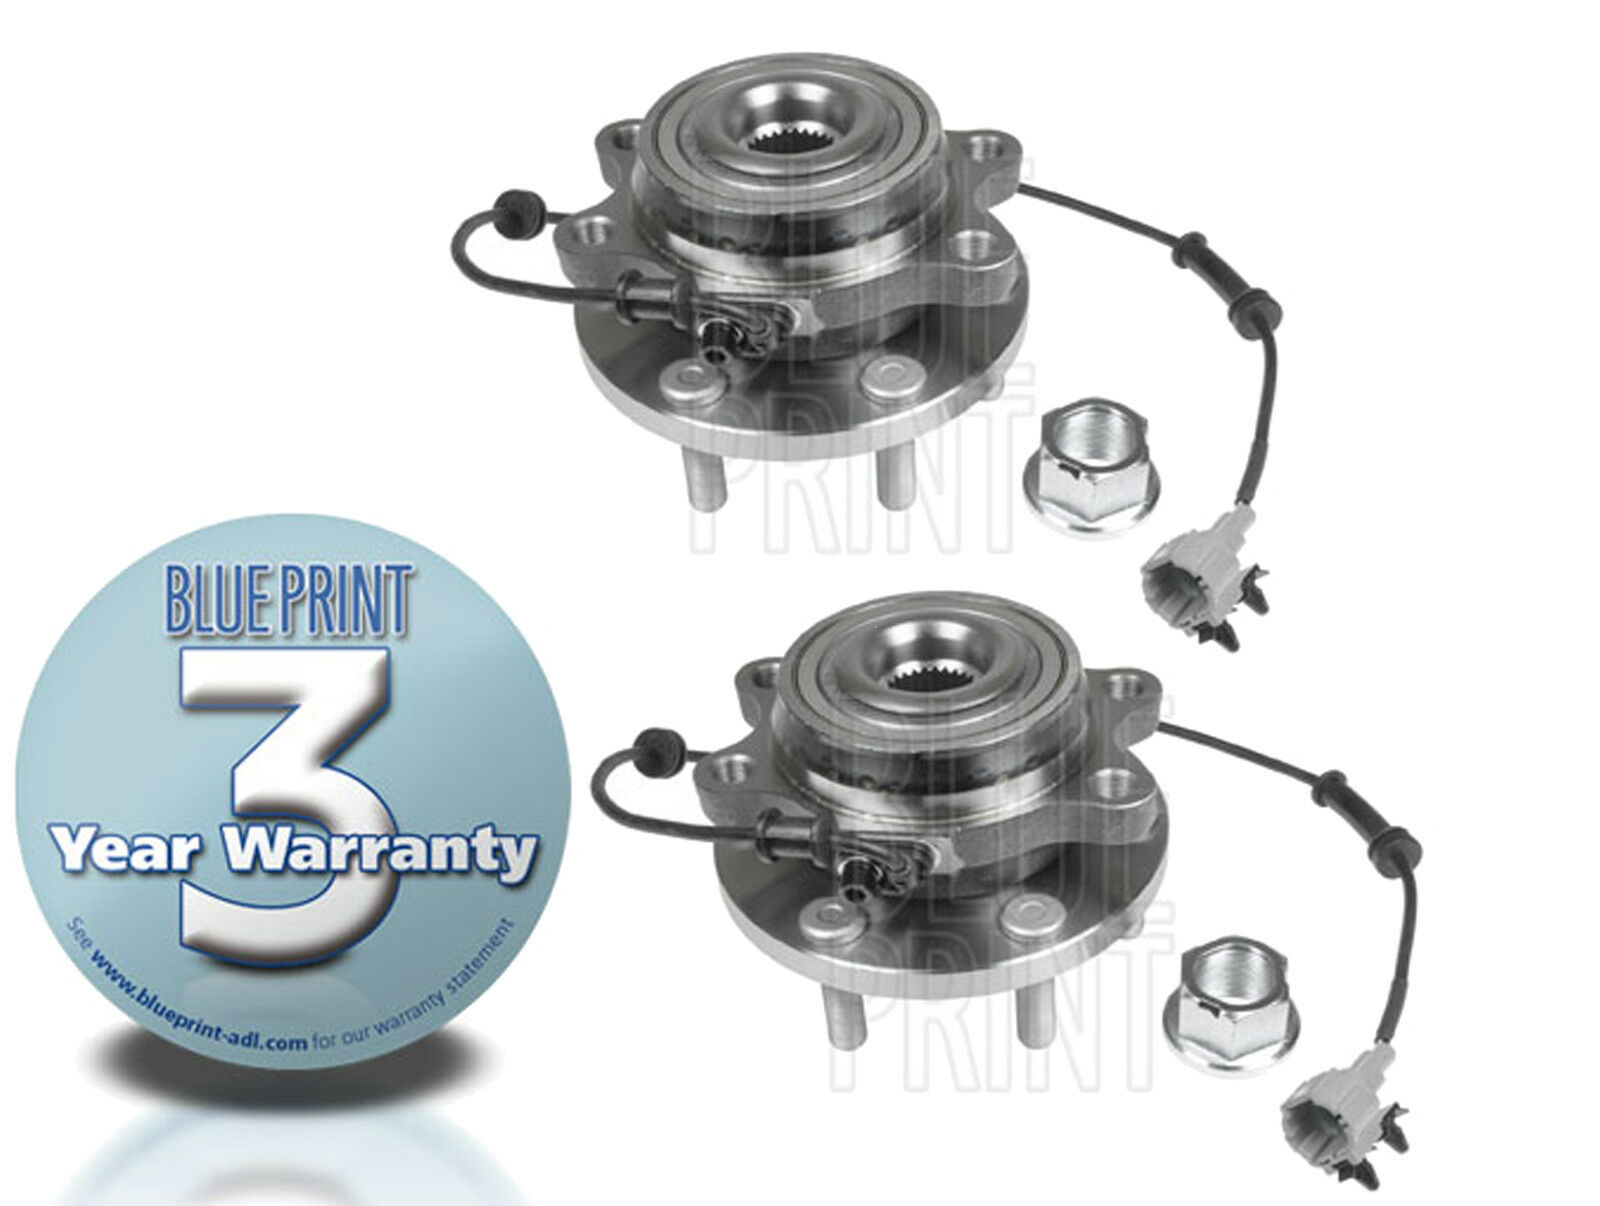 Details about FOR NISSAN NAVARA D40 2 5TD 2 FRONT WHEEL BEARING HUB HUBS  ASSEMBLY KIT WITH ABS